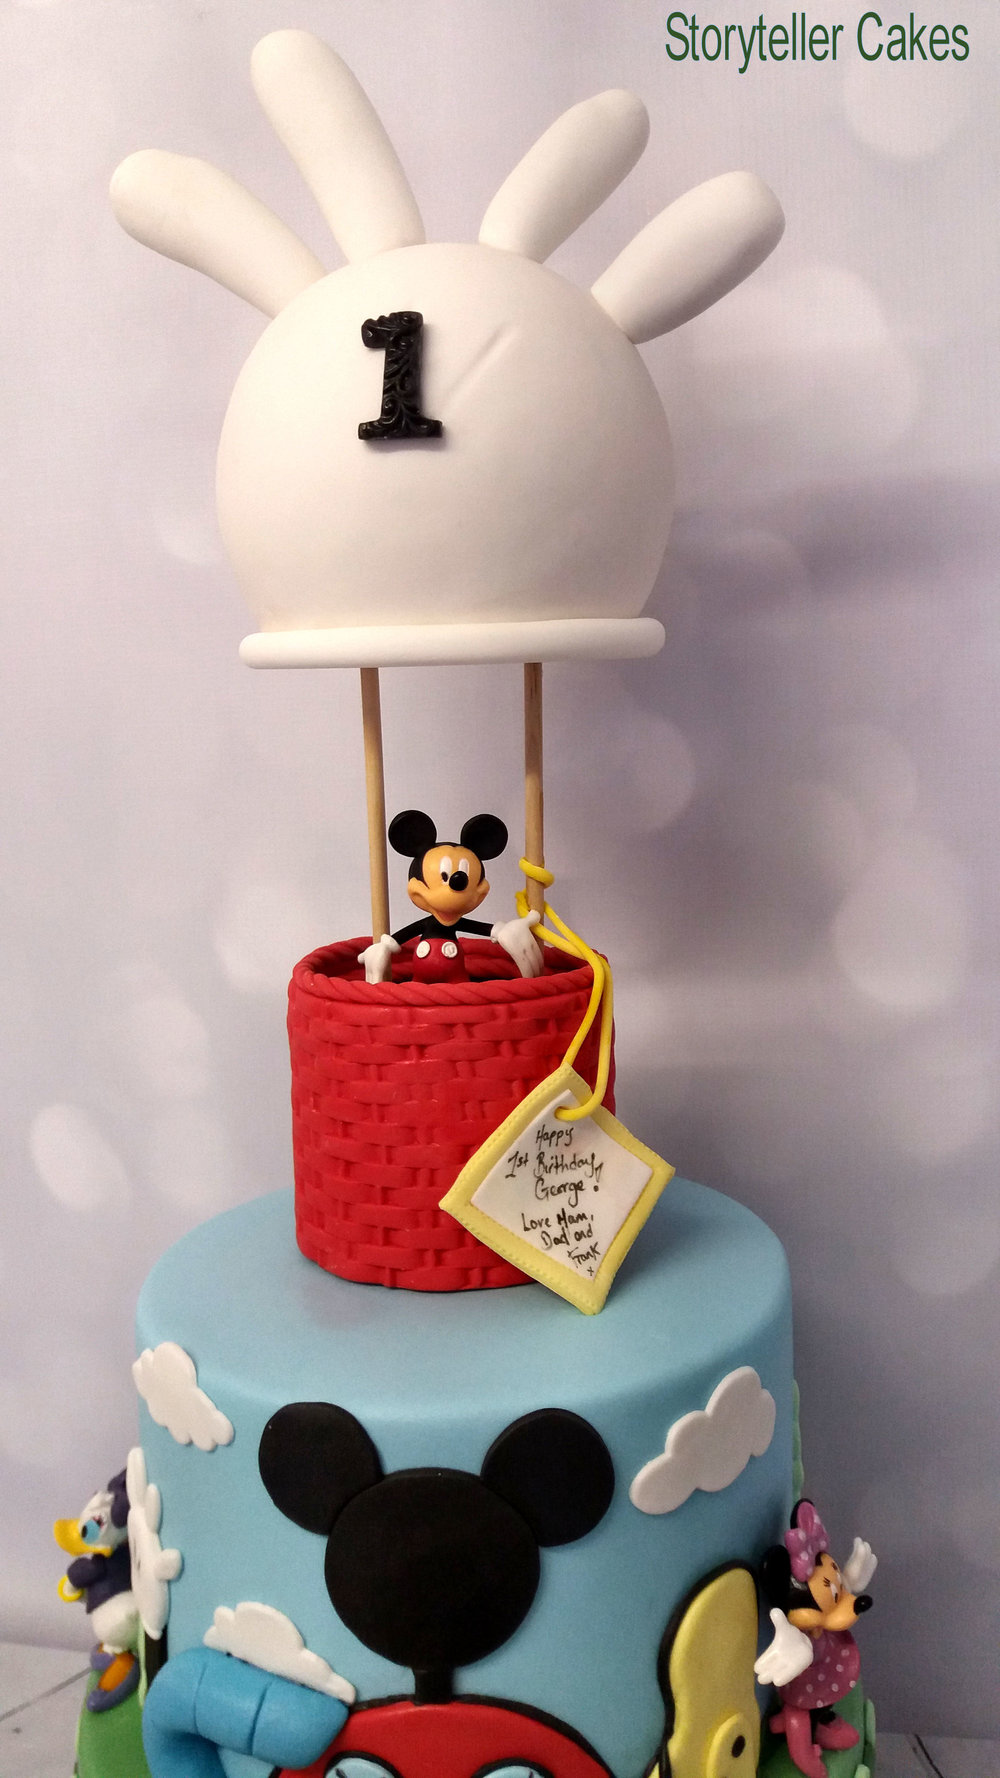 Mickey Mouse Air Balloon Cake 2.jpg